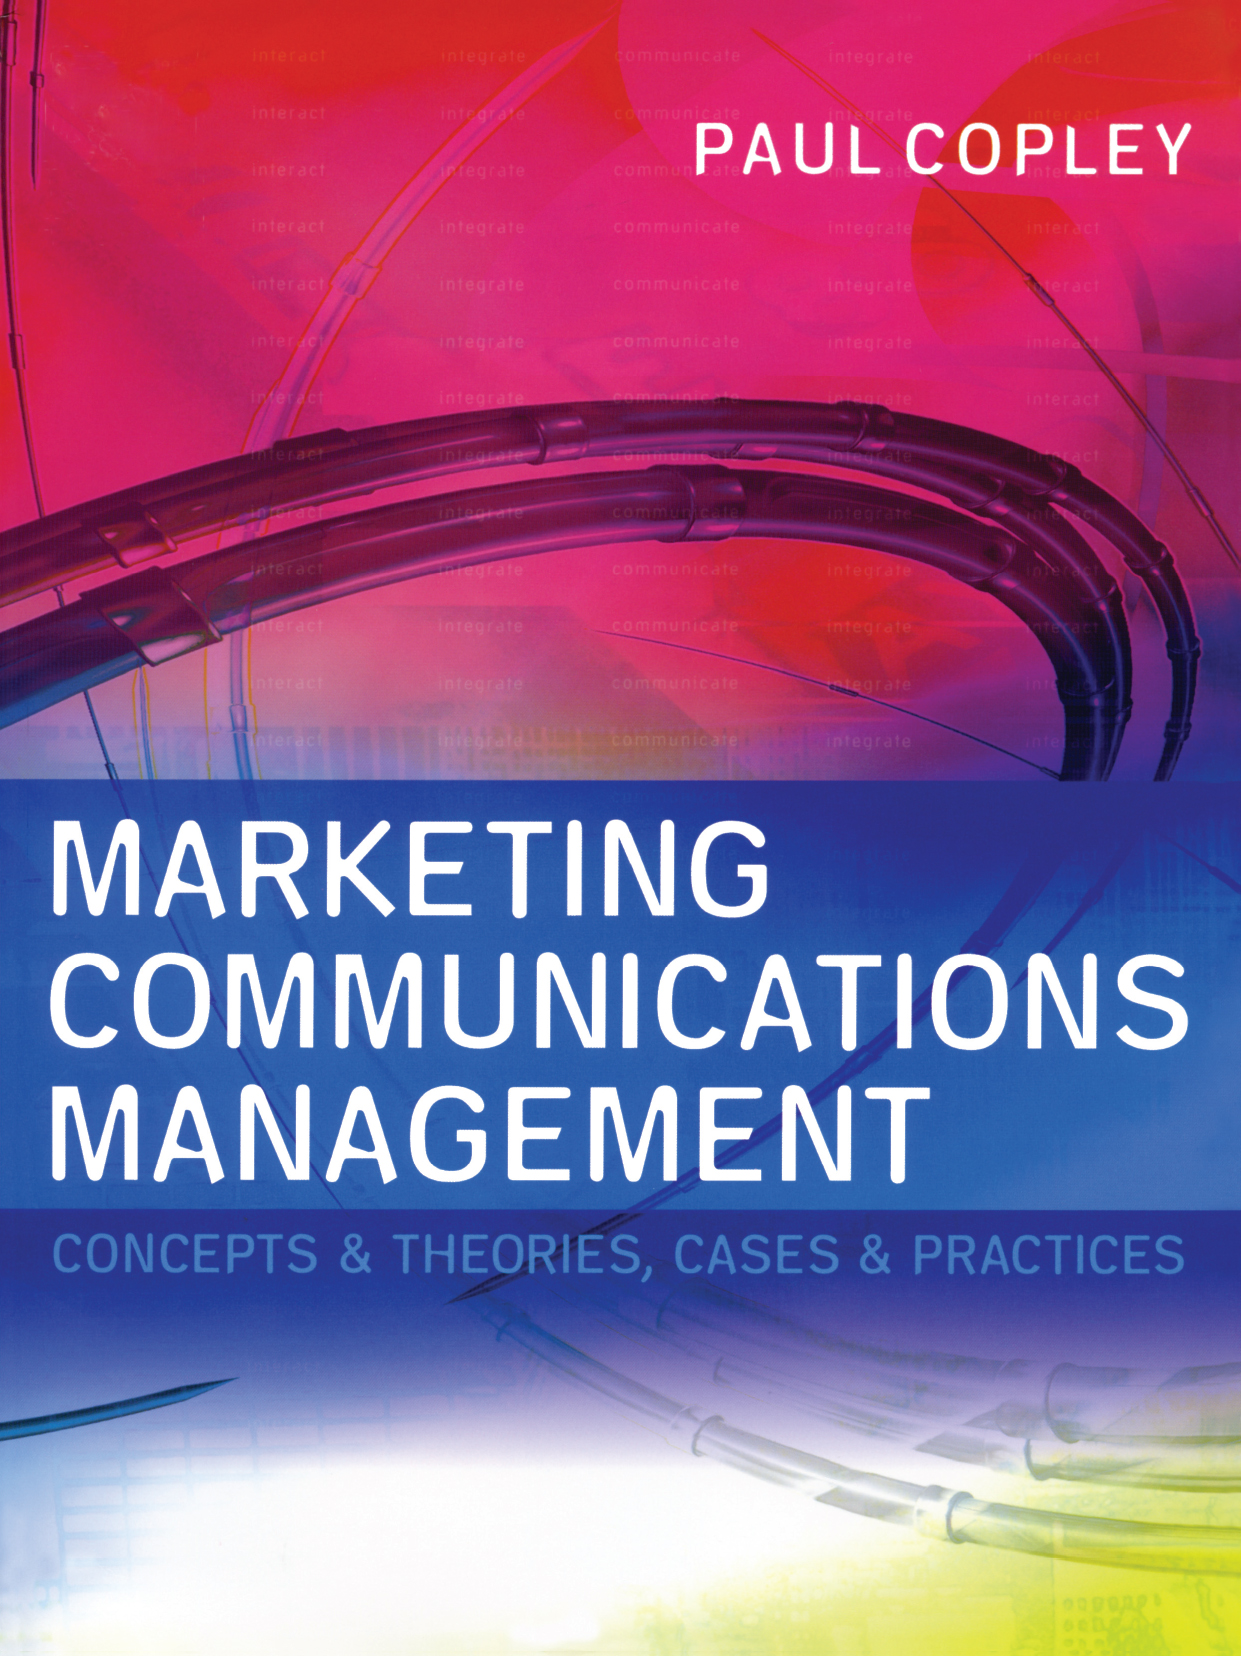 Download Ebook Marketing Communications Management by Paul Copley Pdf